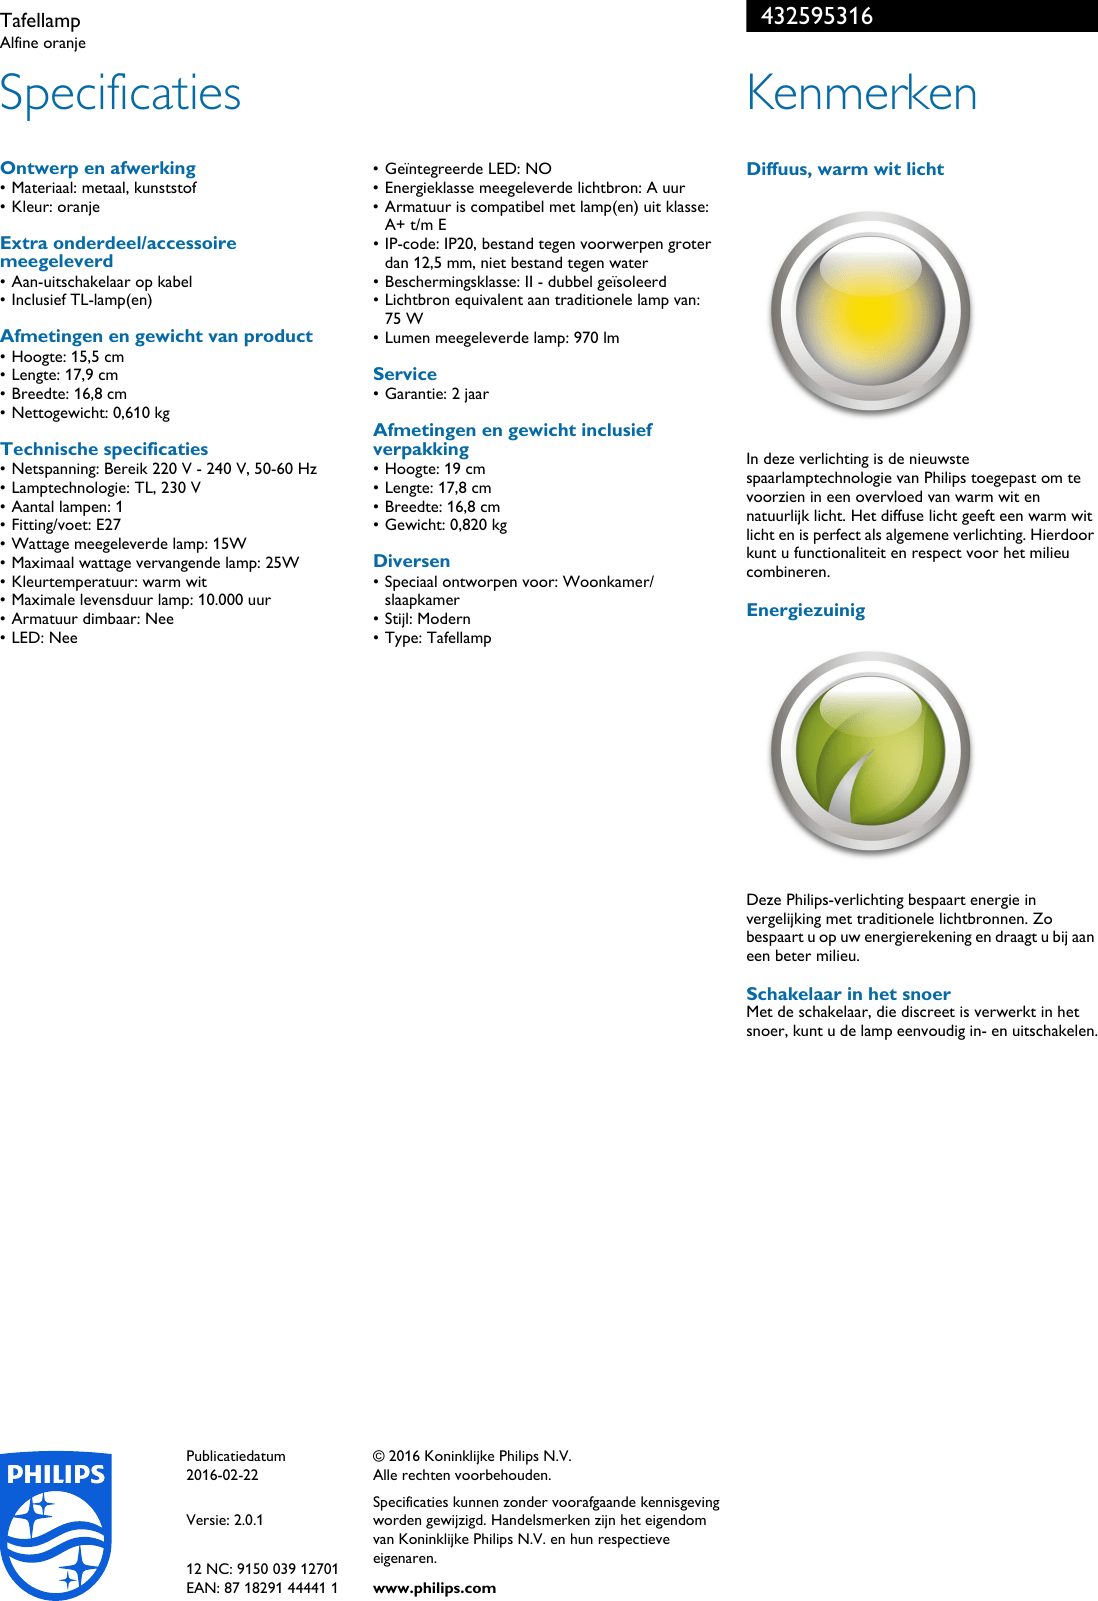 Tl Verlichting Wiki Philips 43259 53 16 432595316 Tafellamp User Manual Brochure Pss Nldbe